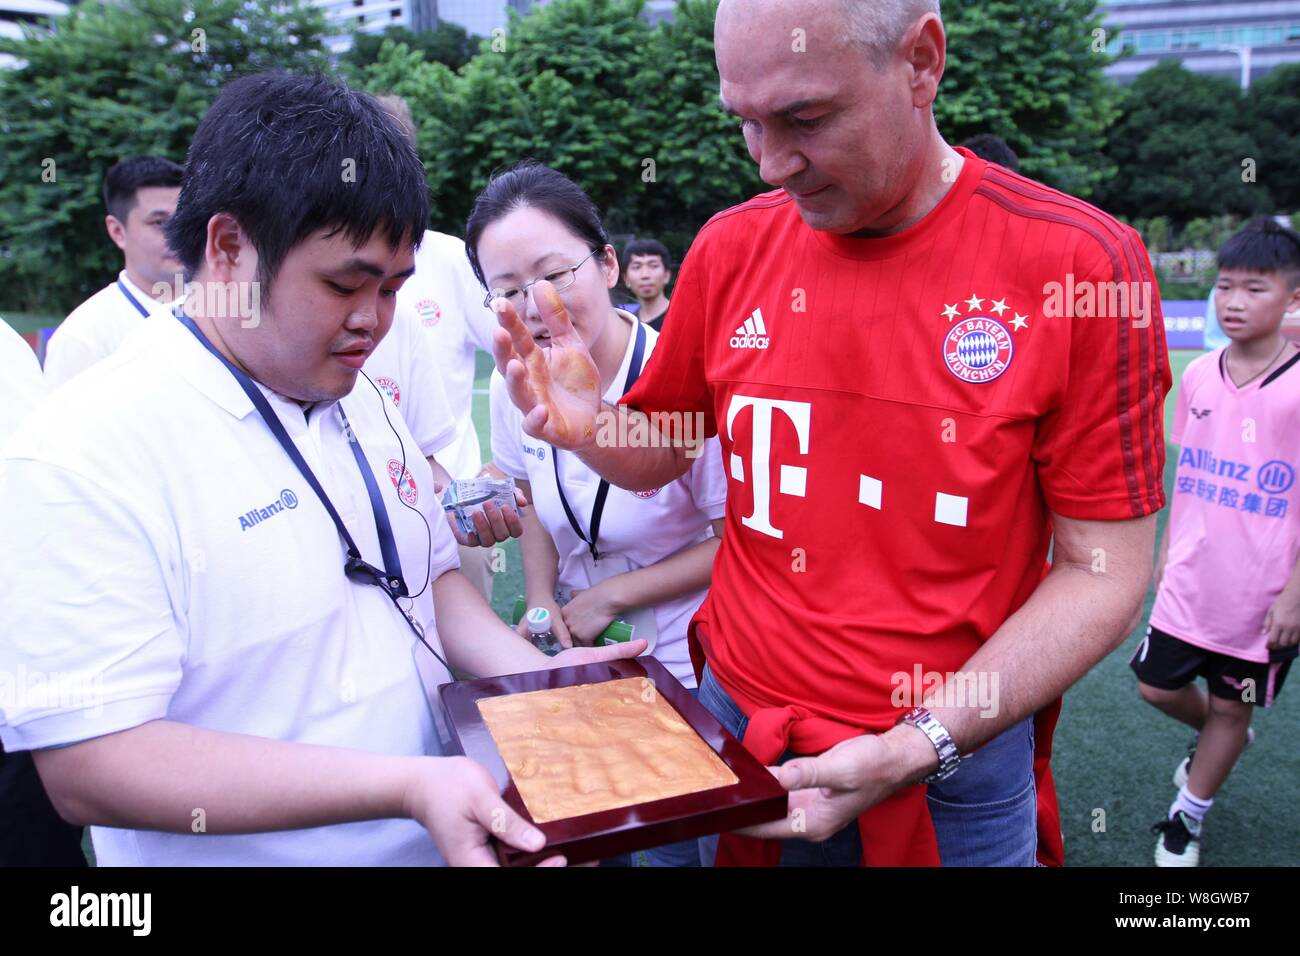 Former German soccer star Raimond Aumann, right, leaves his handprint during a fan meeting event in Guangzhou city, south China's Guangdong province, Stock Photo